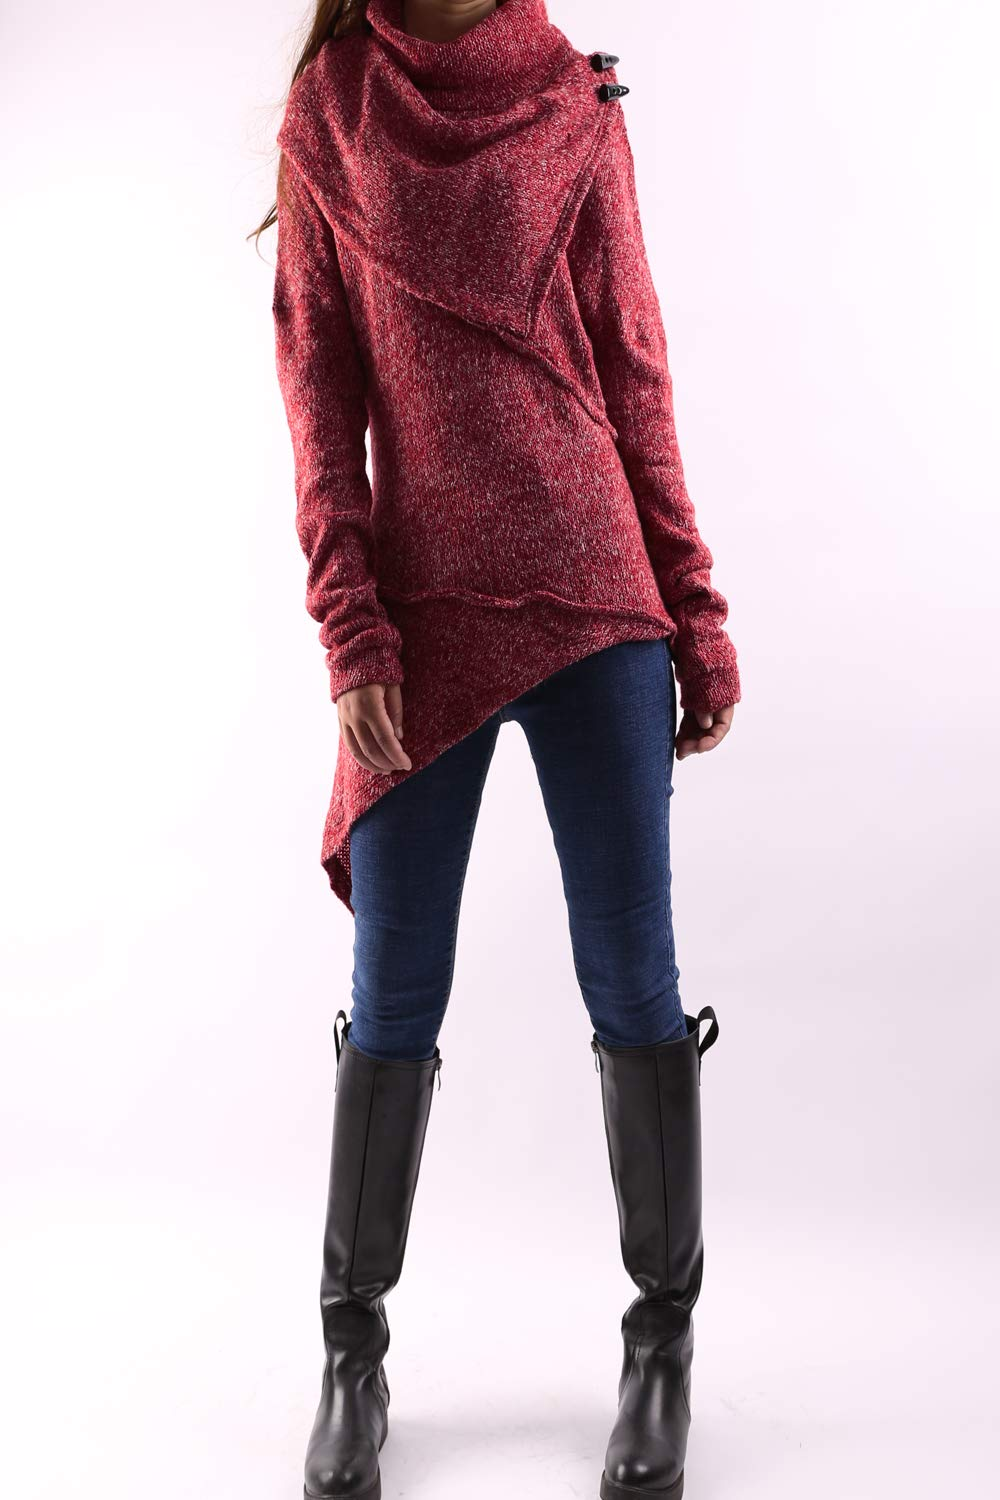 Women's Asymmetrical Knit Sweater Red